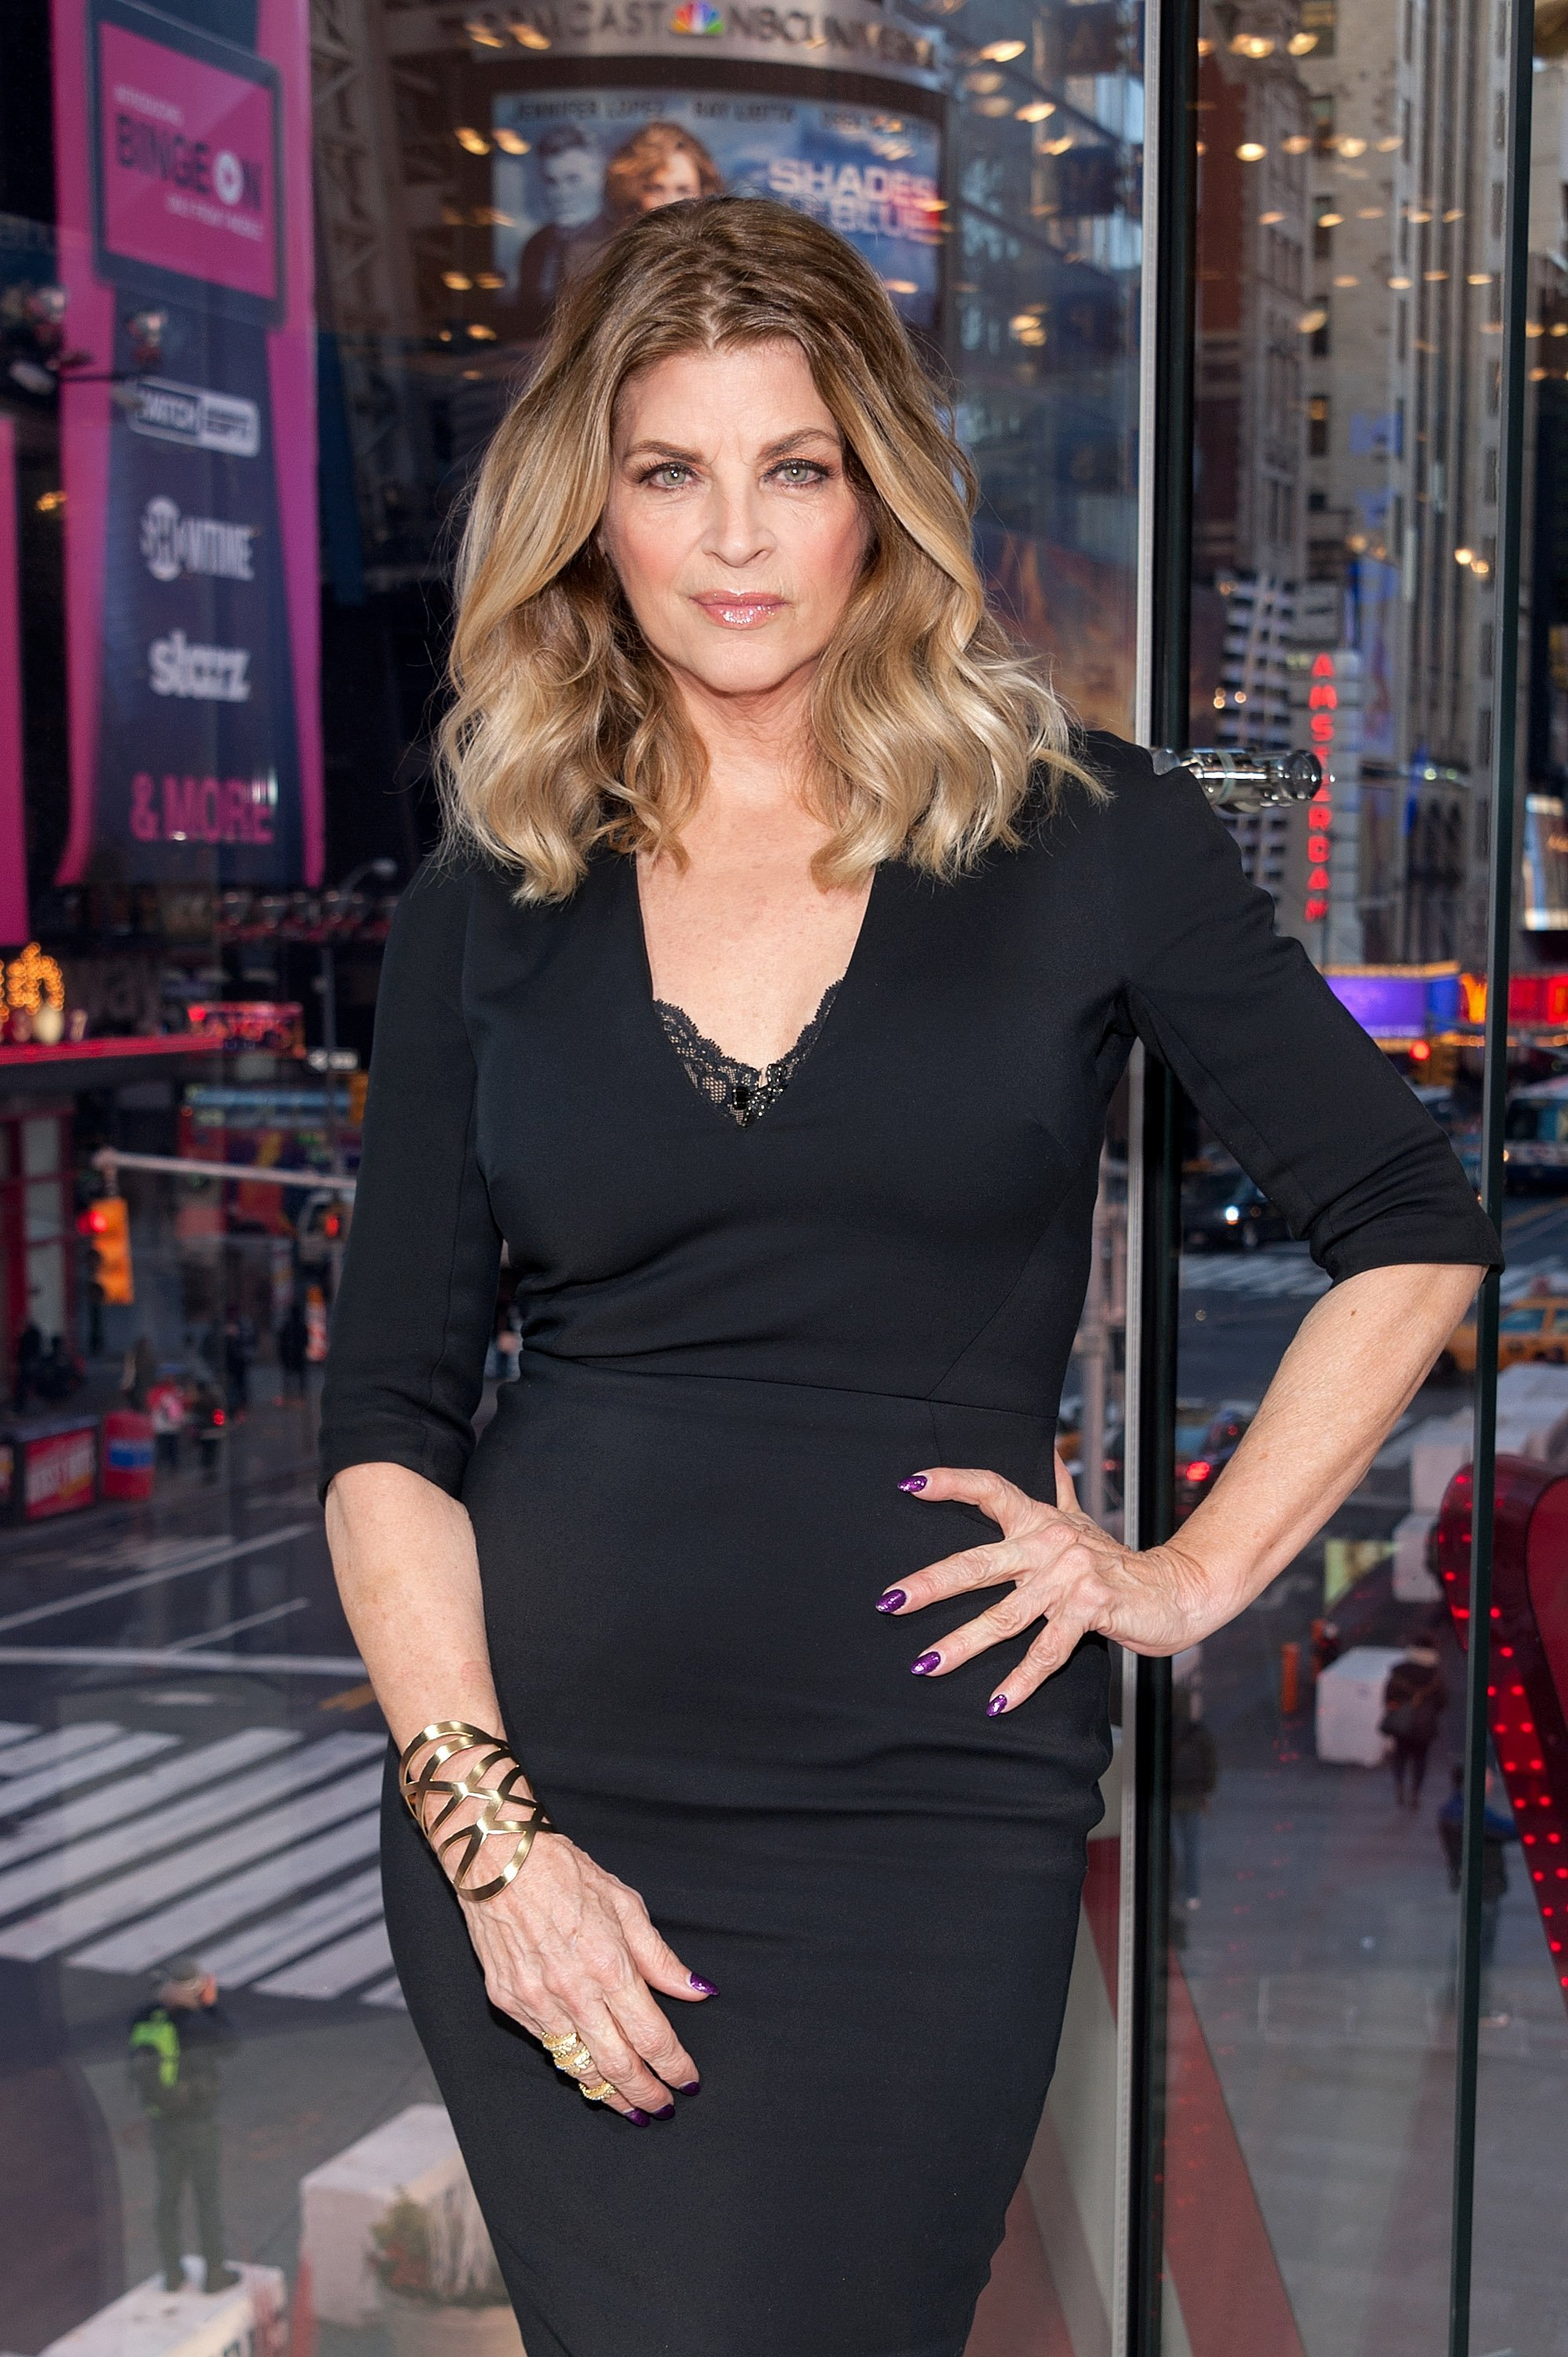 Kirstie Alley on January 5, 2016 in New York City | Photo: Getty Images/Global Images Ukraine